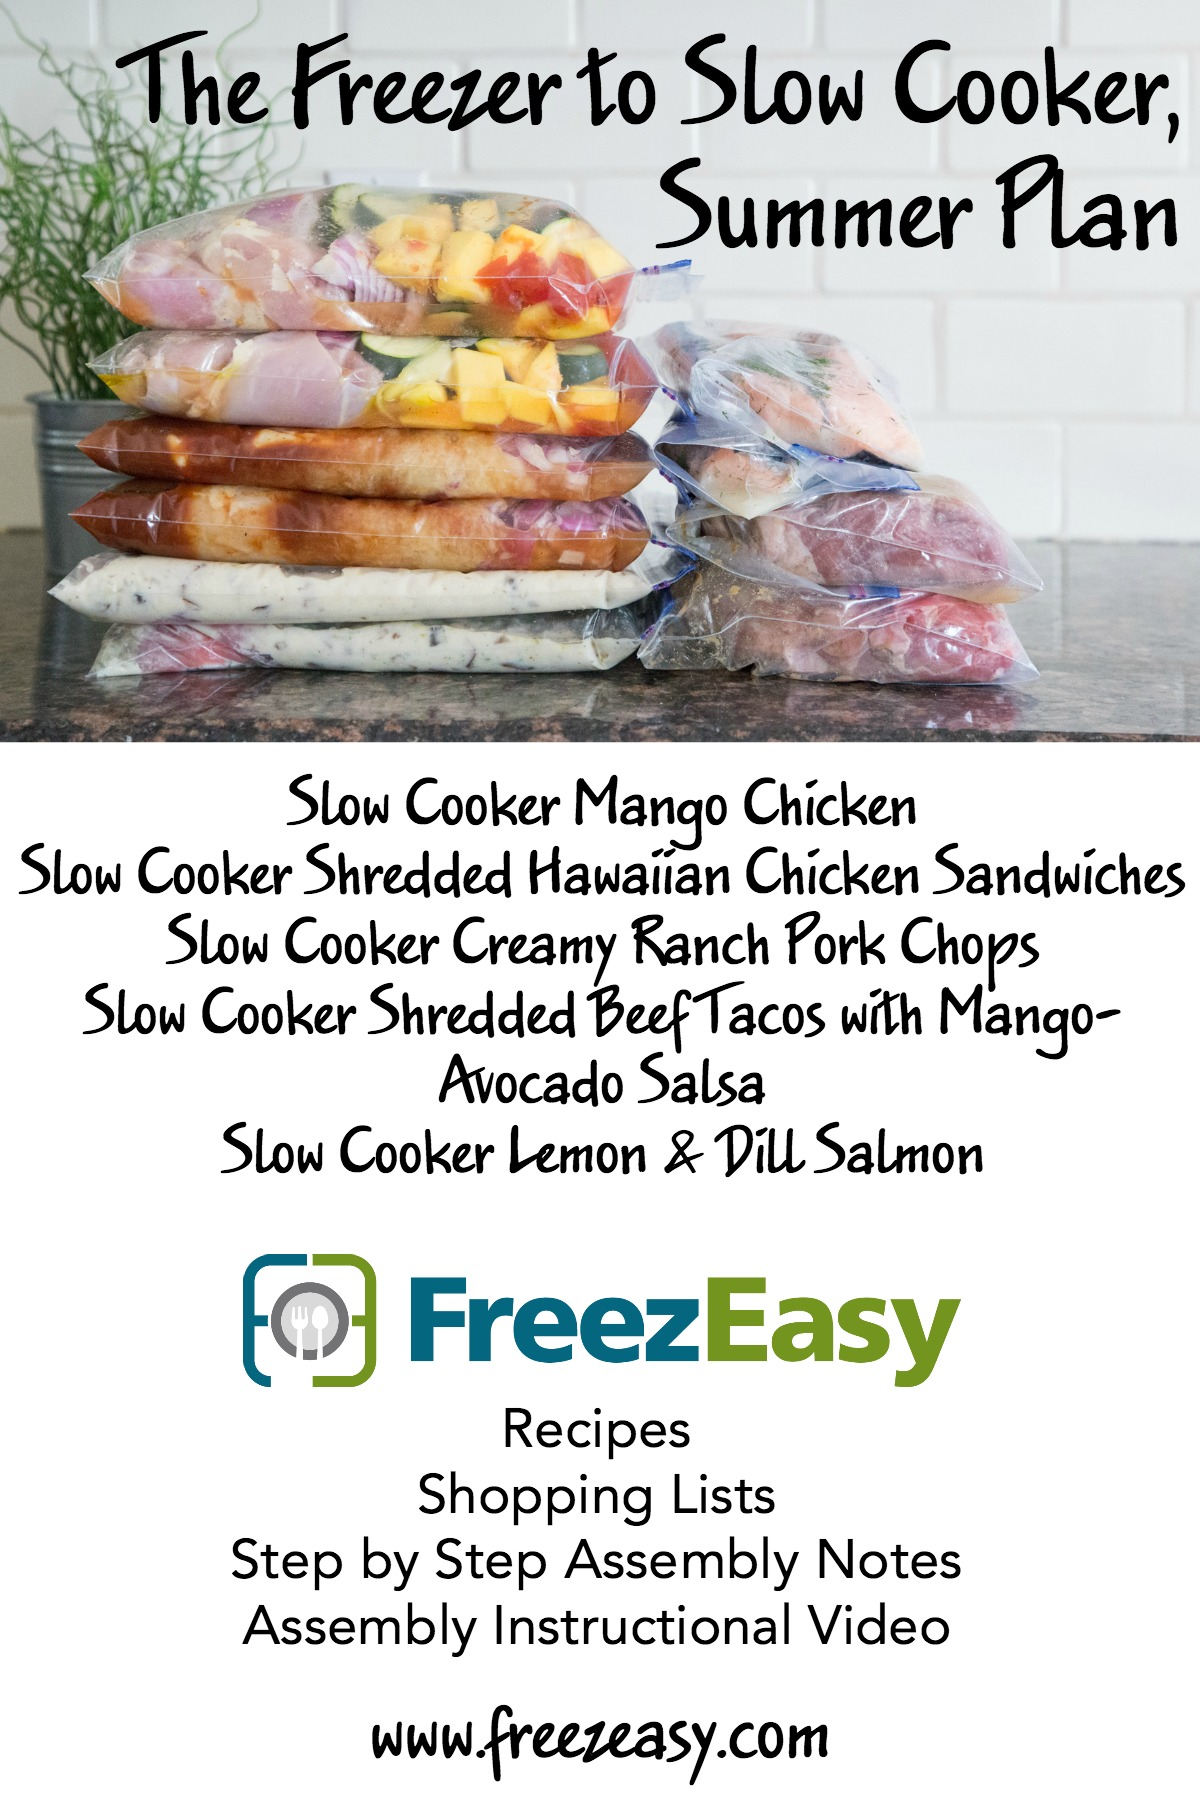 Summer Freezer to Slow Cooker Meals at FreezEasy.com